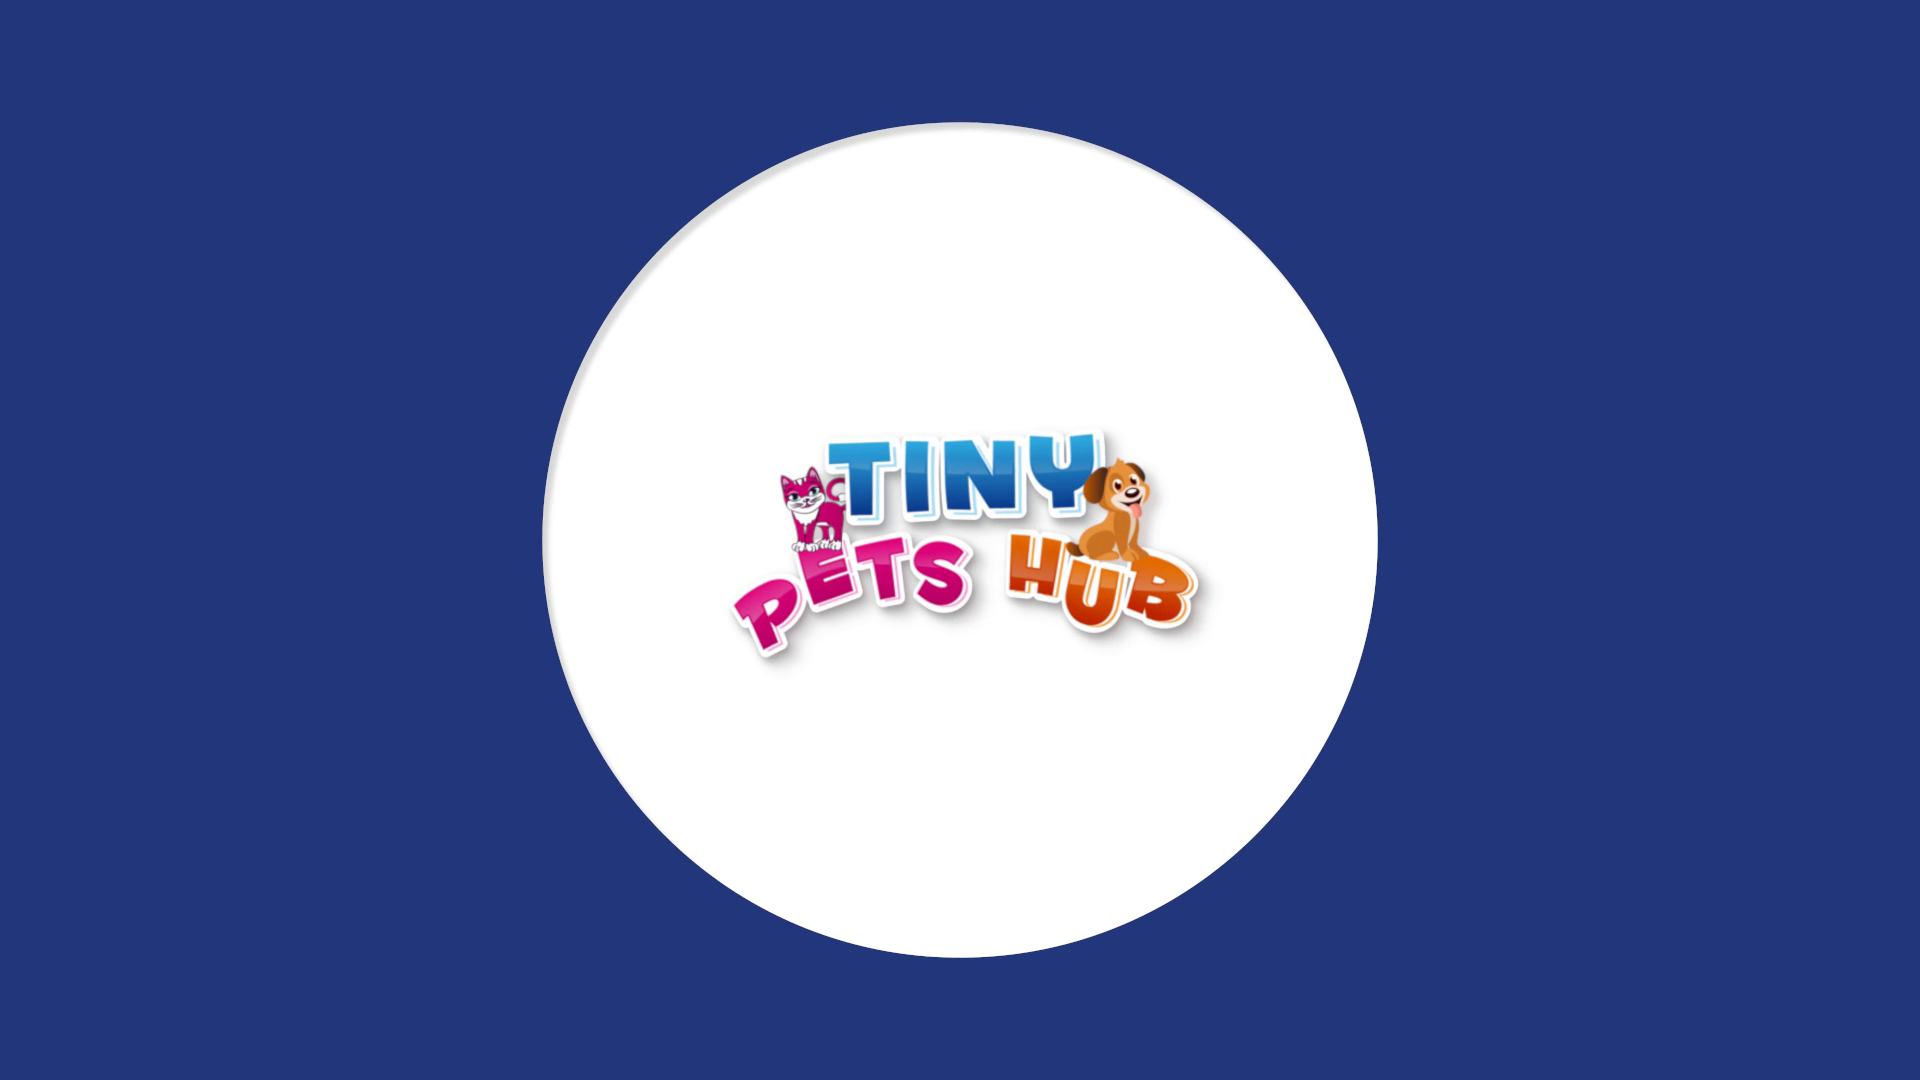 Bouncy Flat Logo Reveal for Tiny Pets Hub